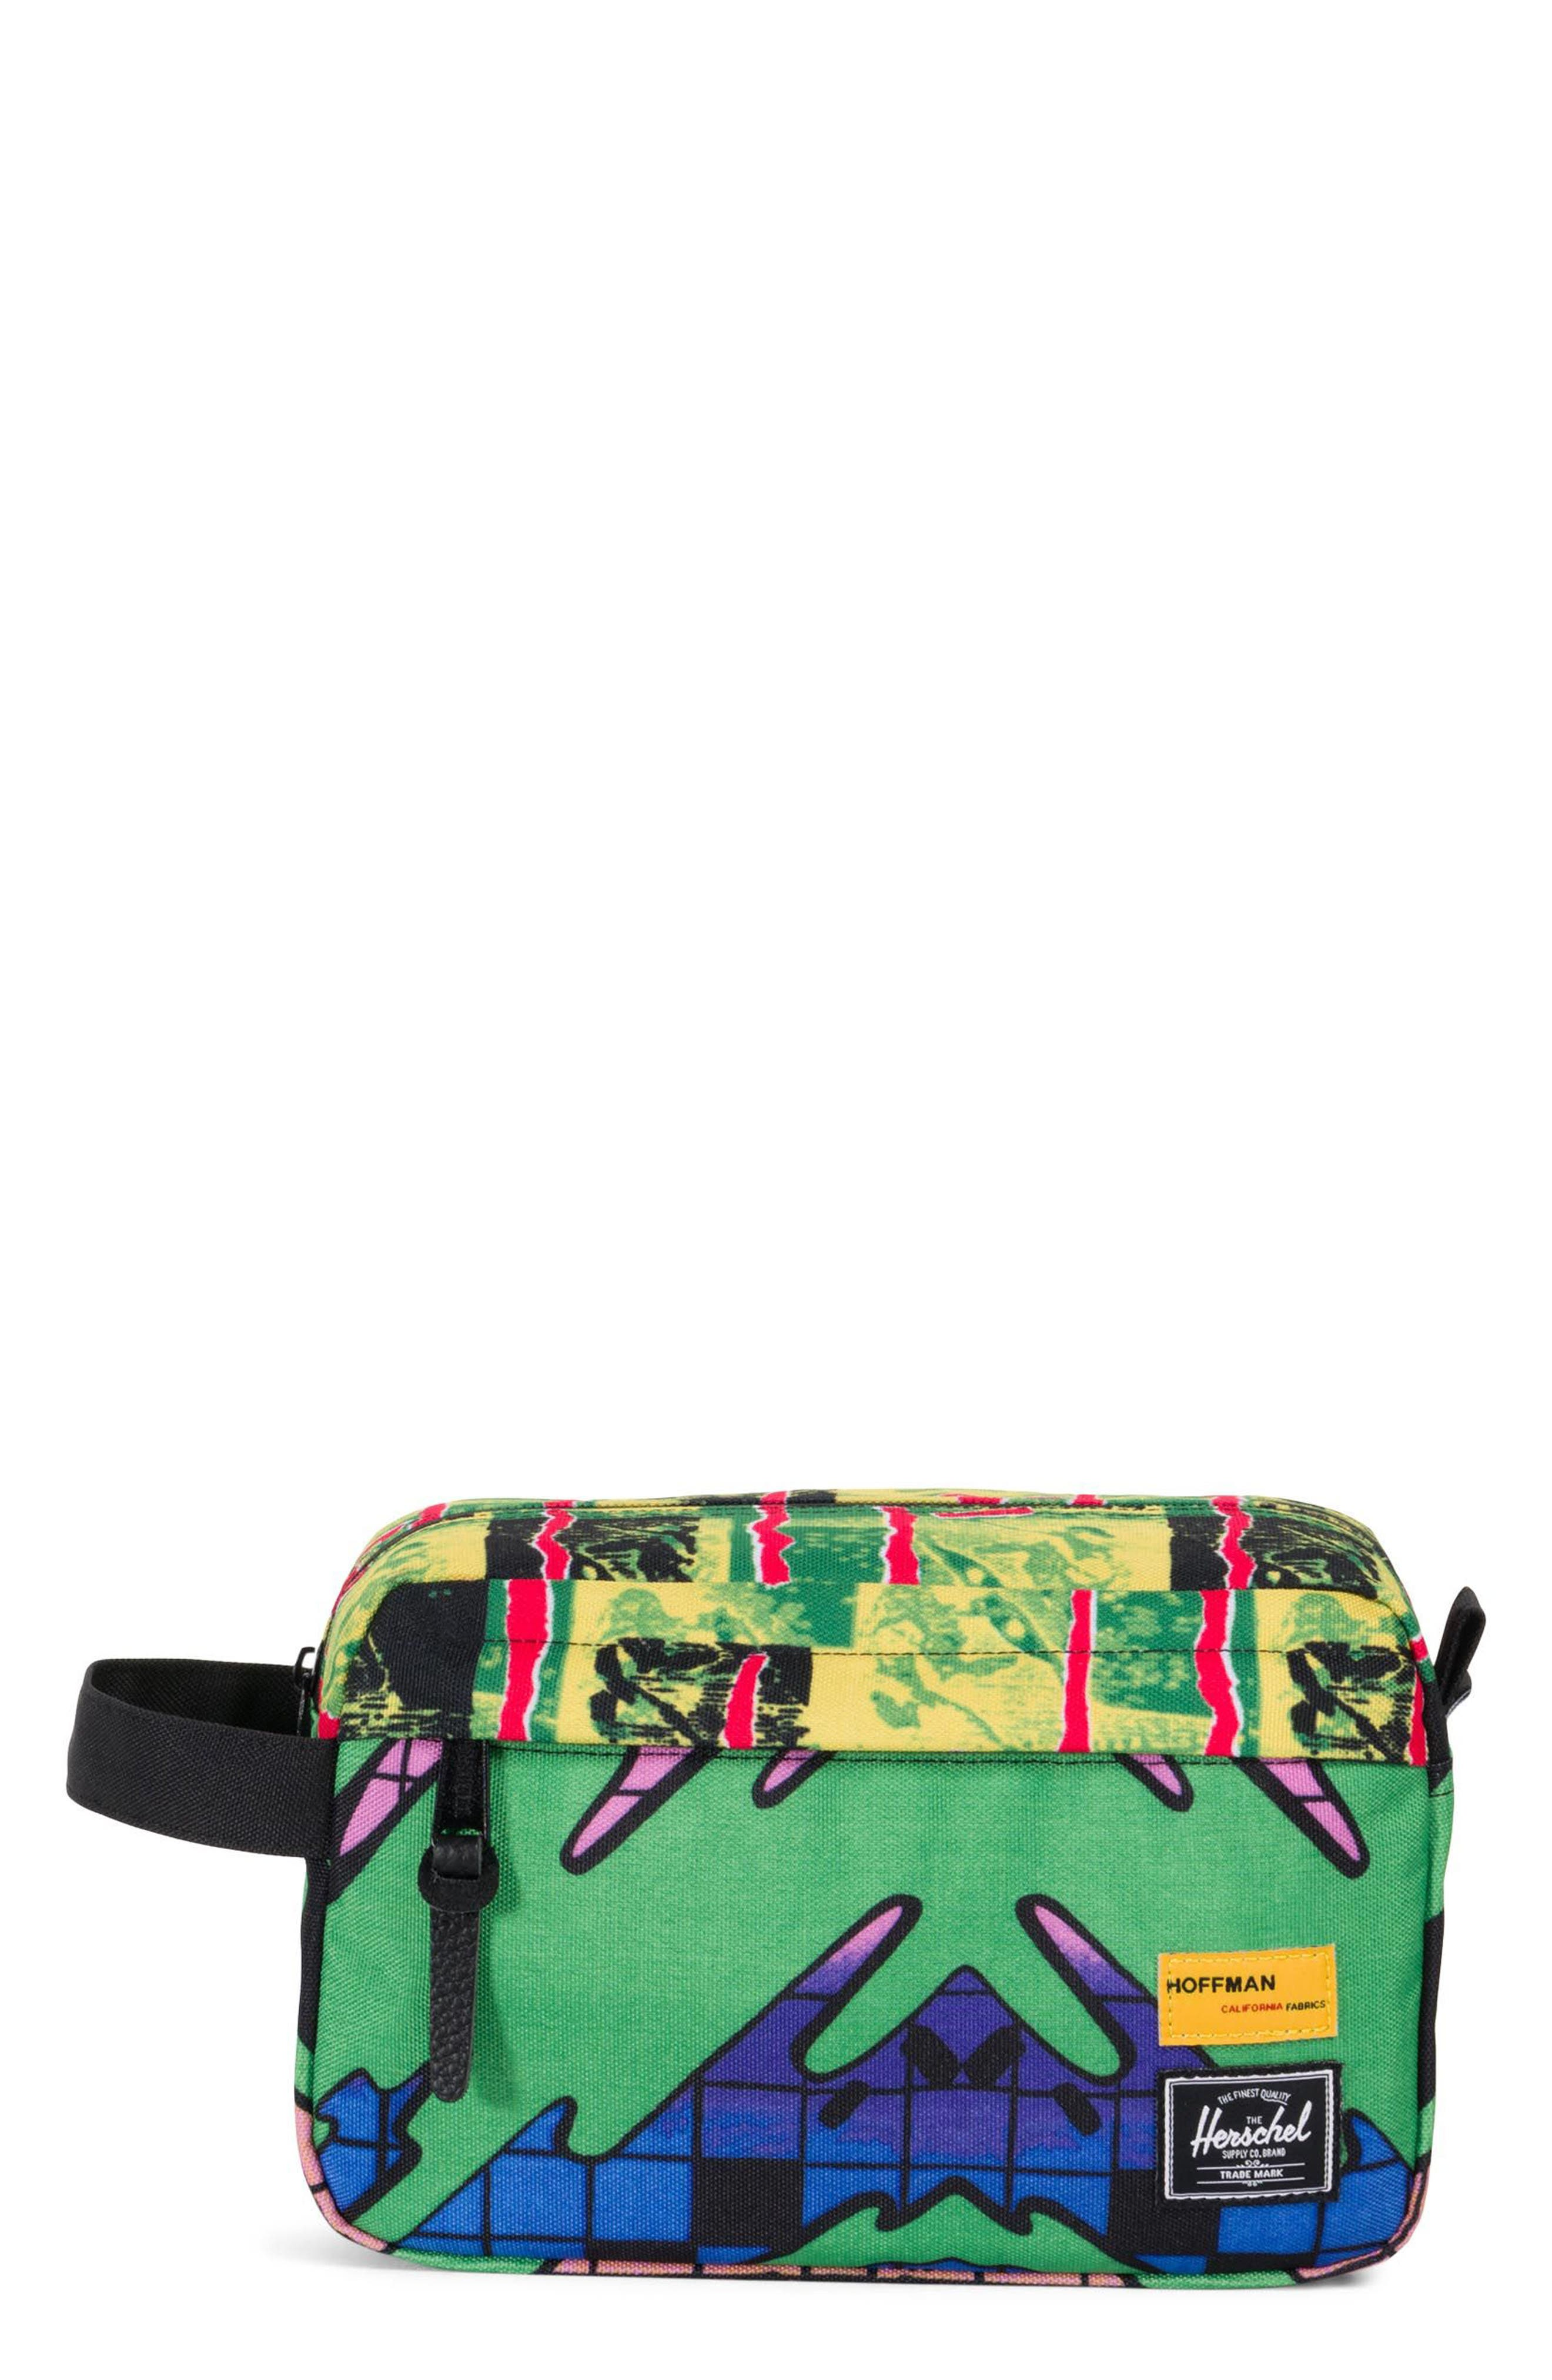 Hoffman Chapter Dopp Kit,                         Main,                         color, Check/ Surf